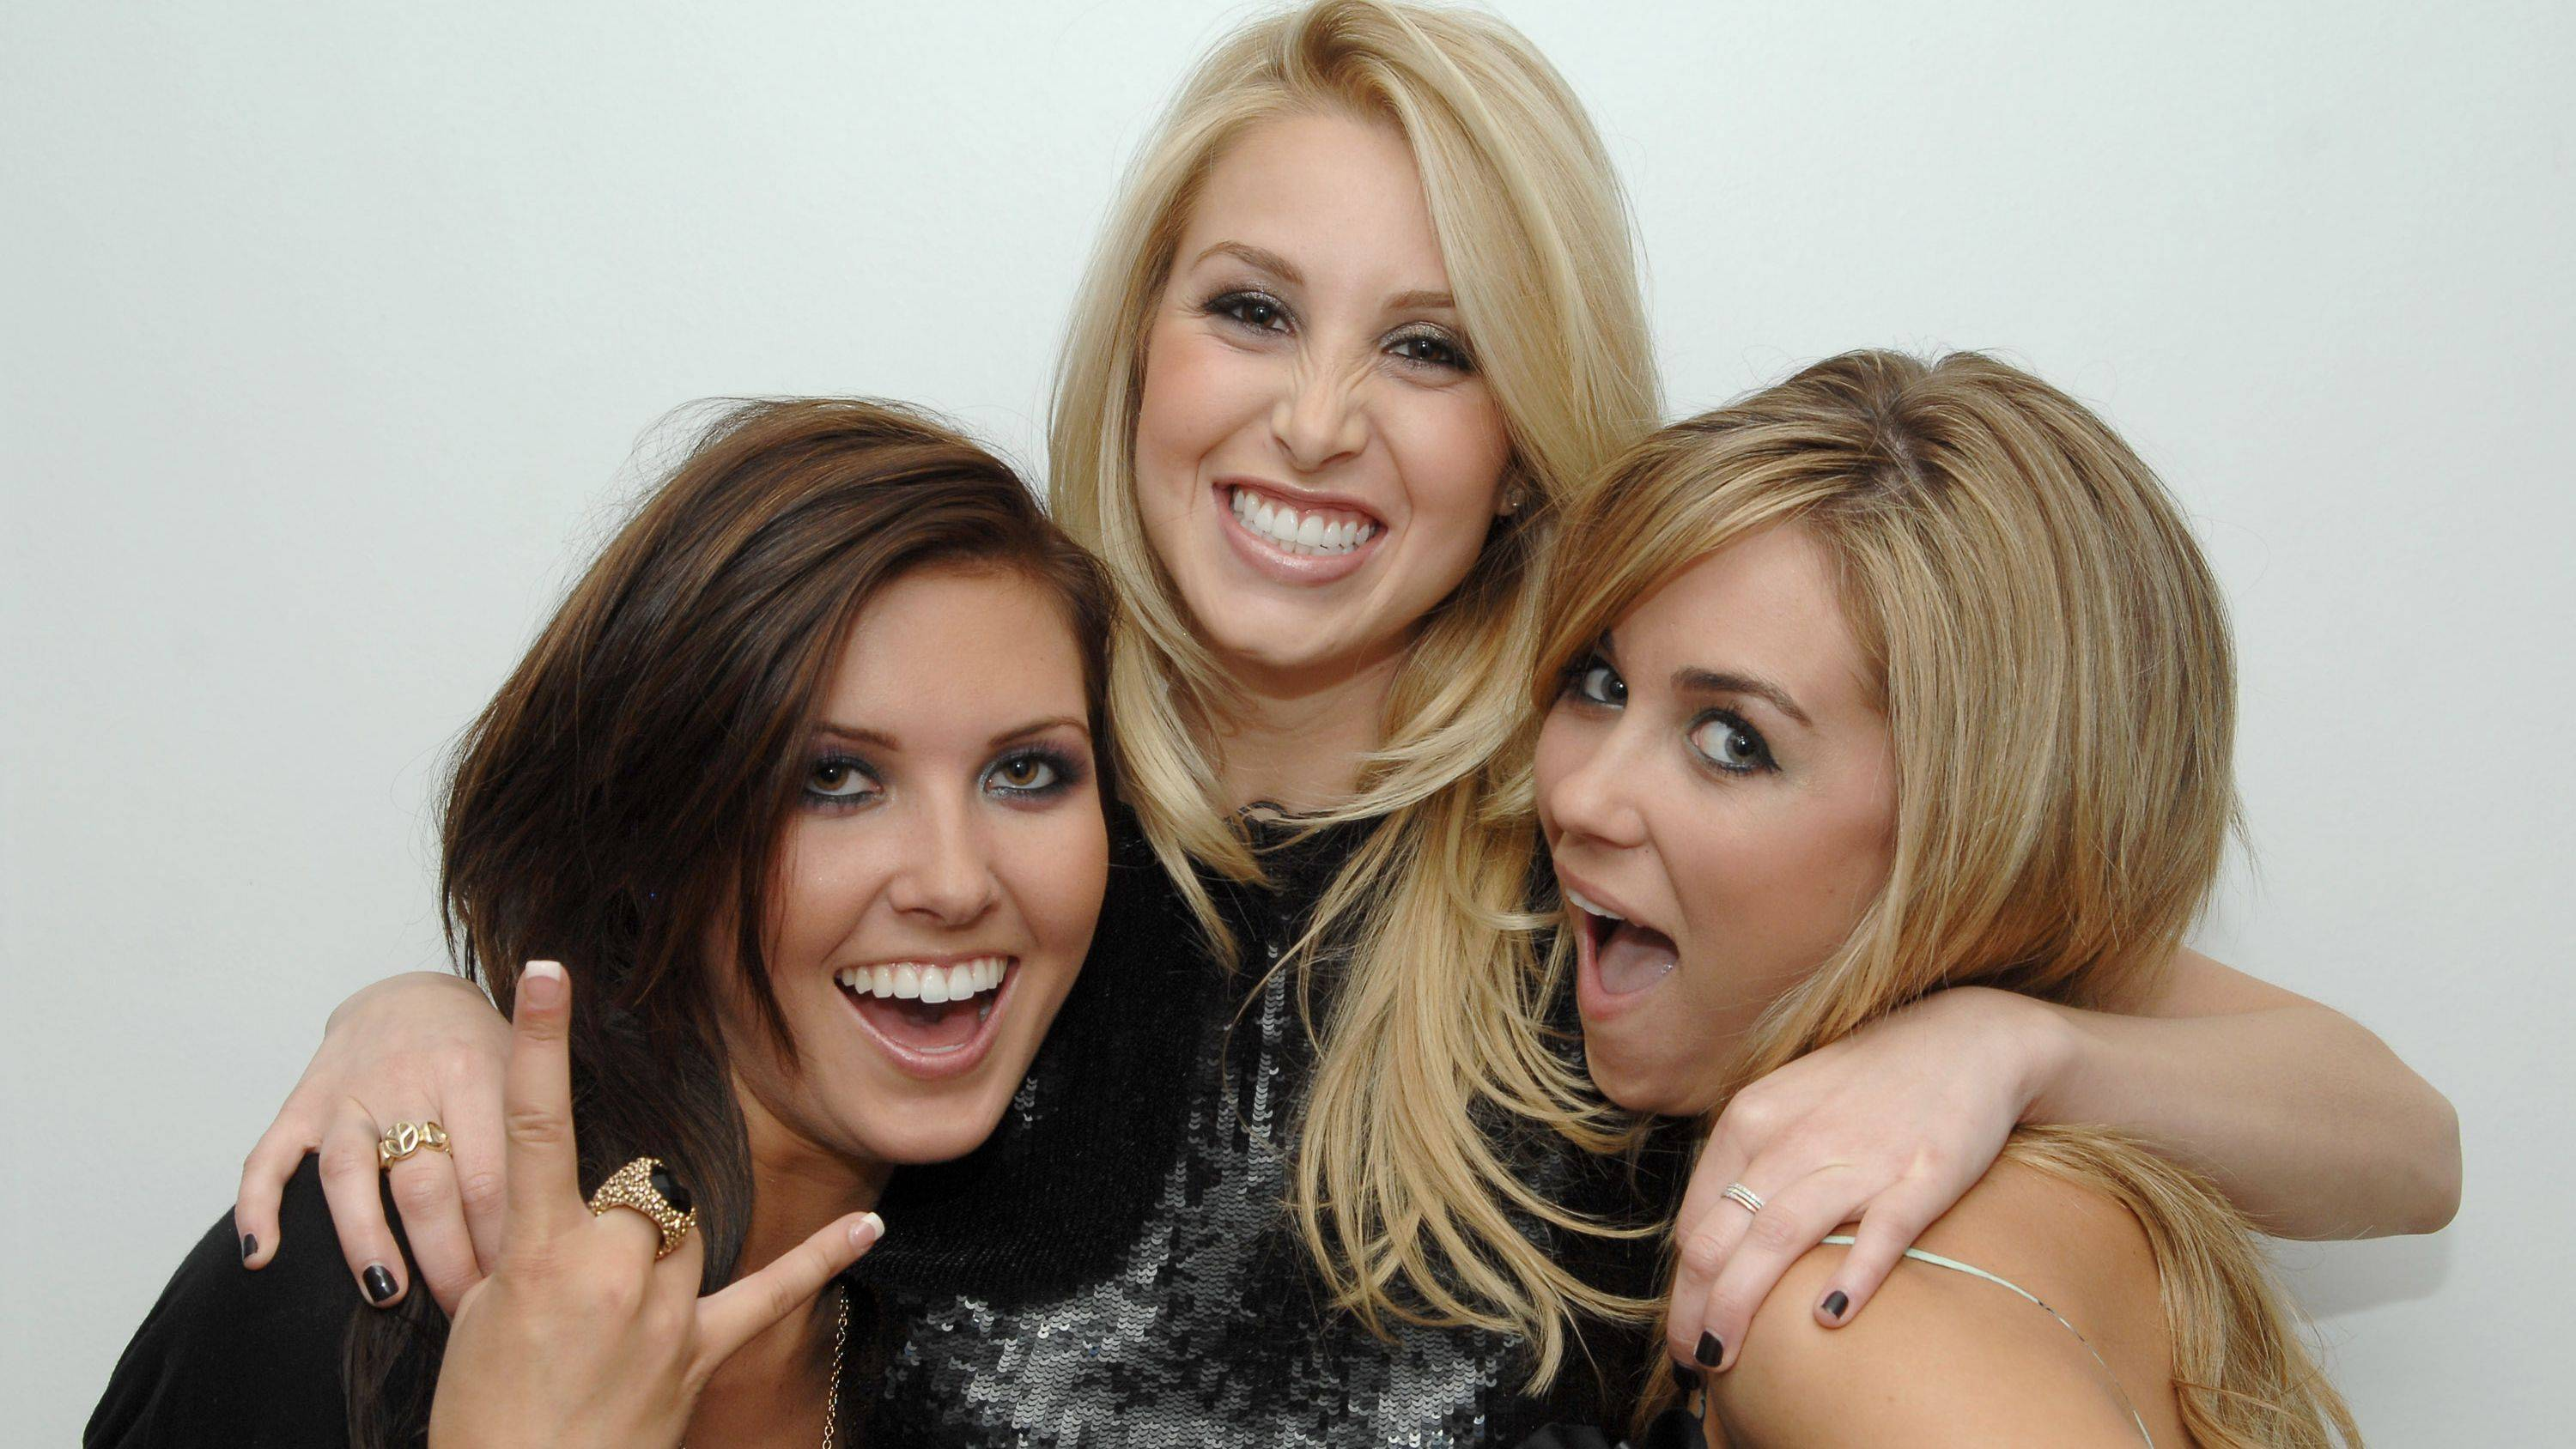 18 Songs From The Hills You Definitely Made Your Myspace